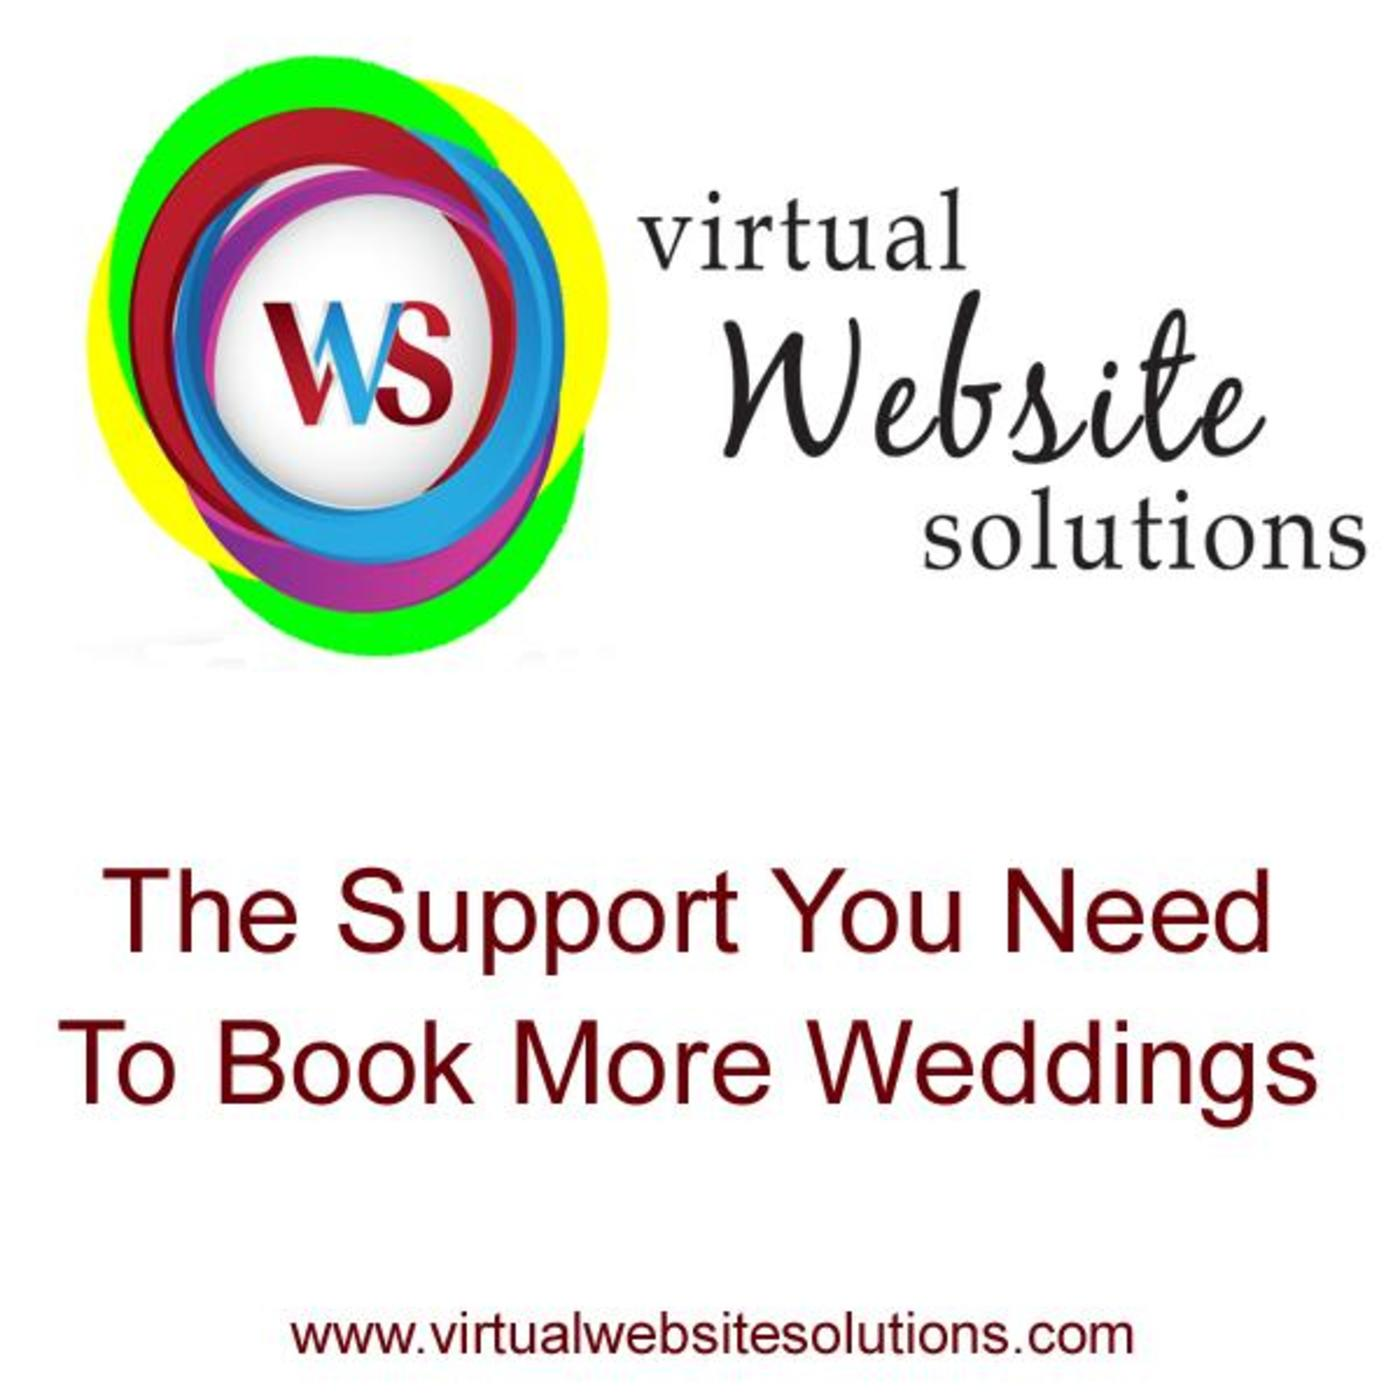 Virtual Website Solutions